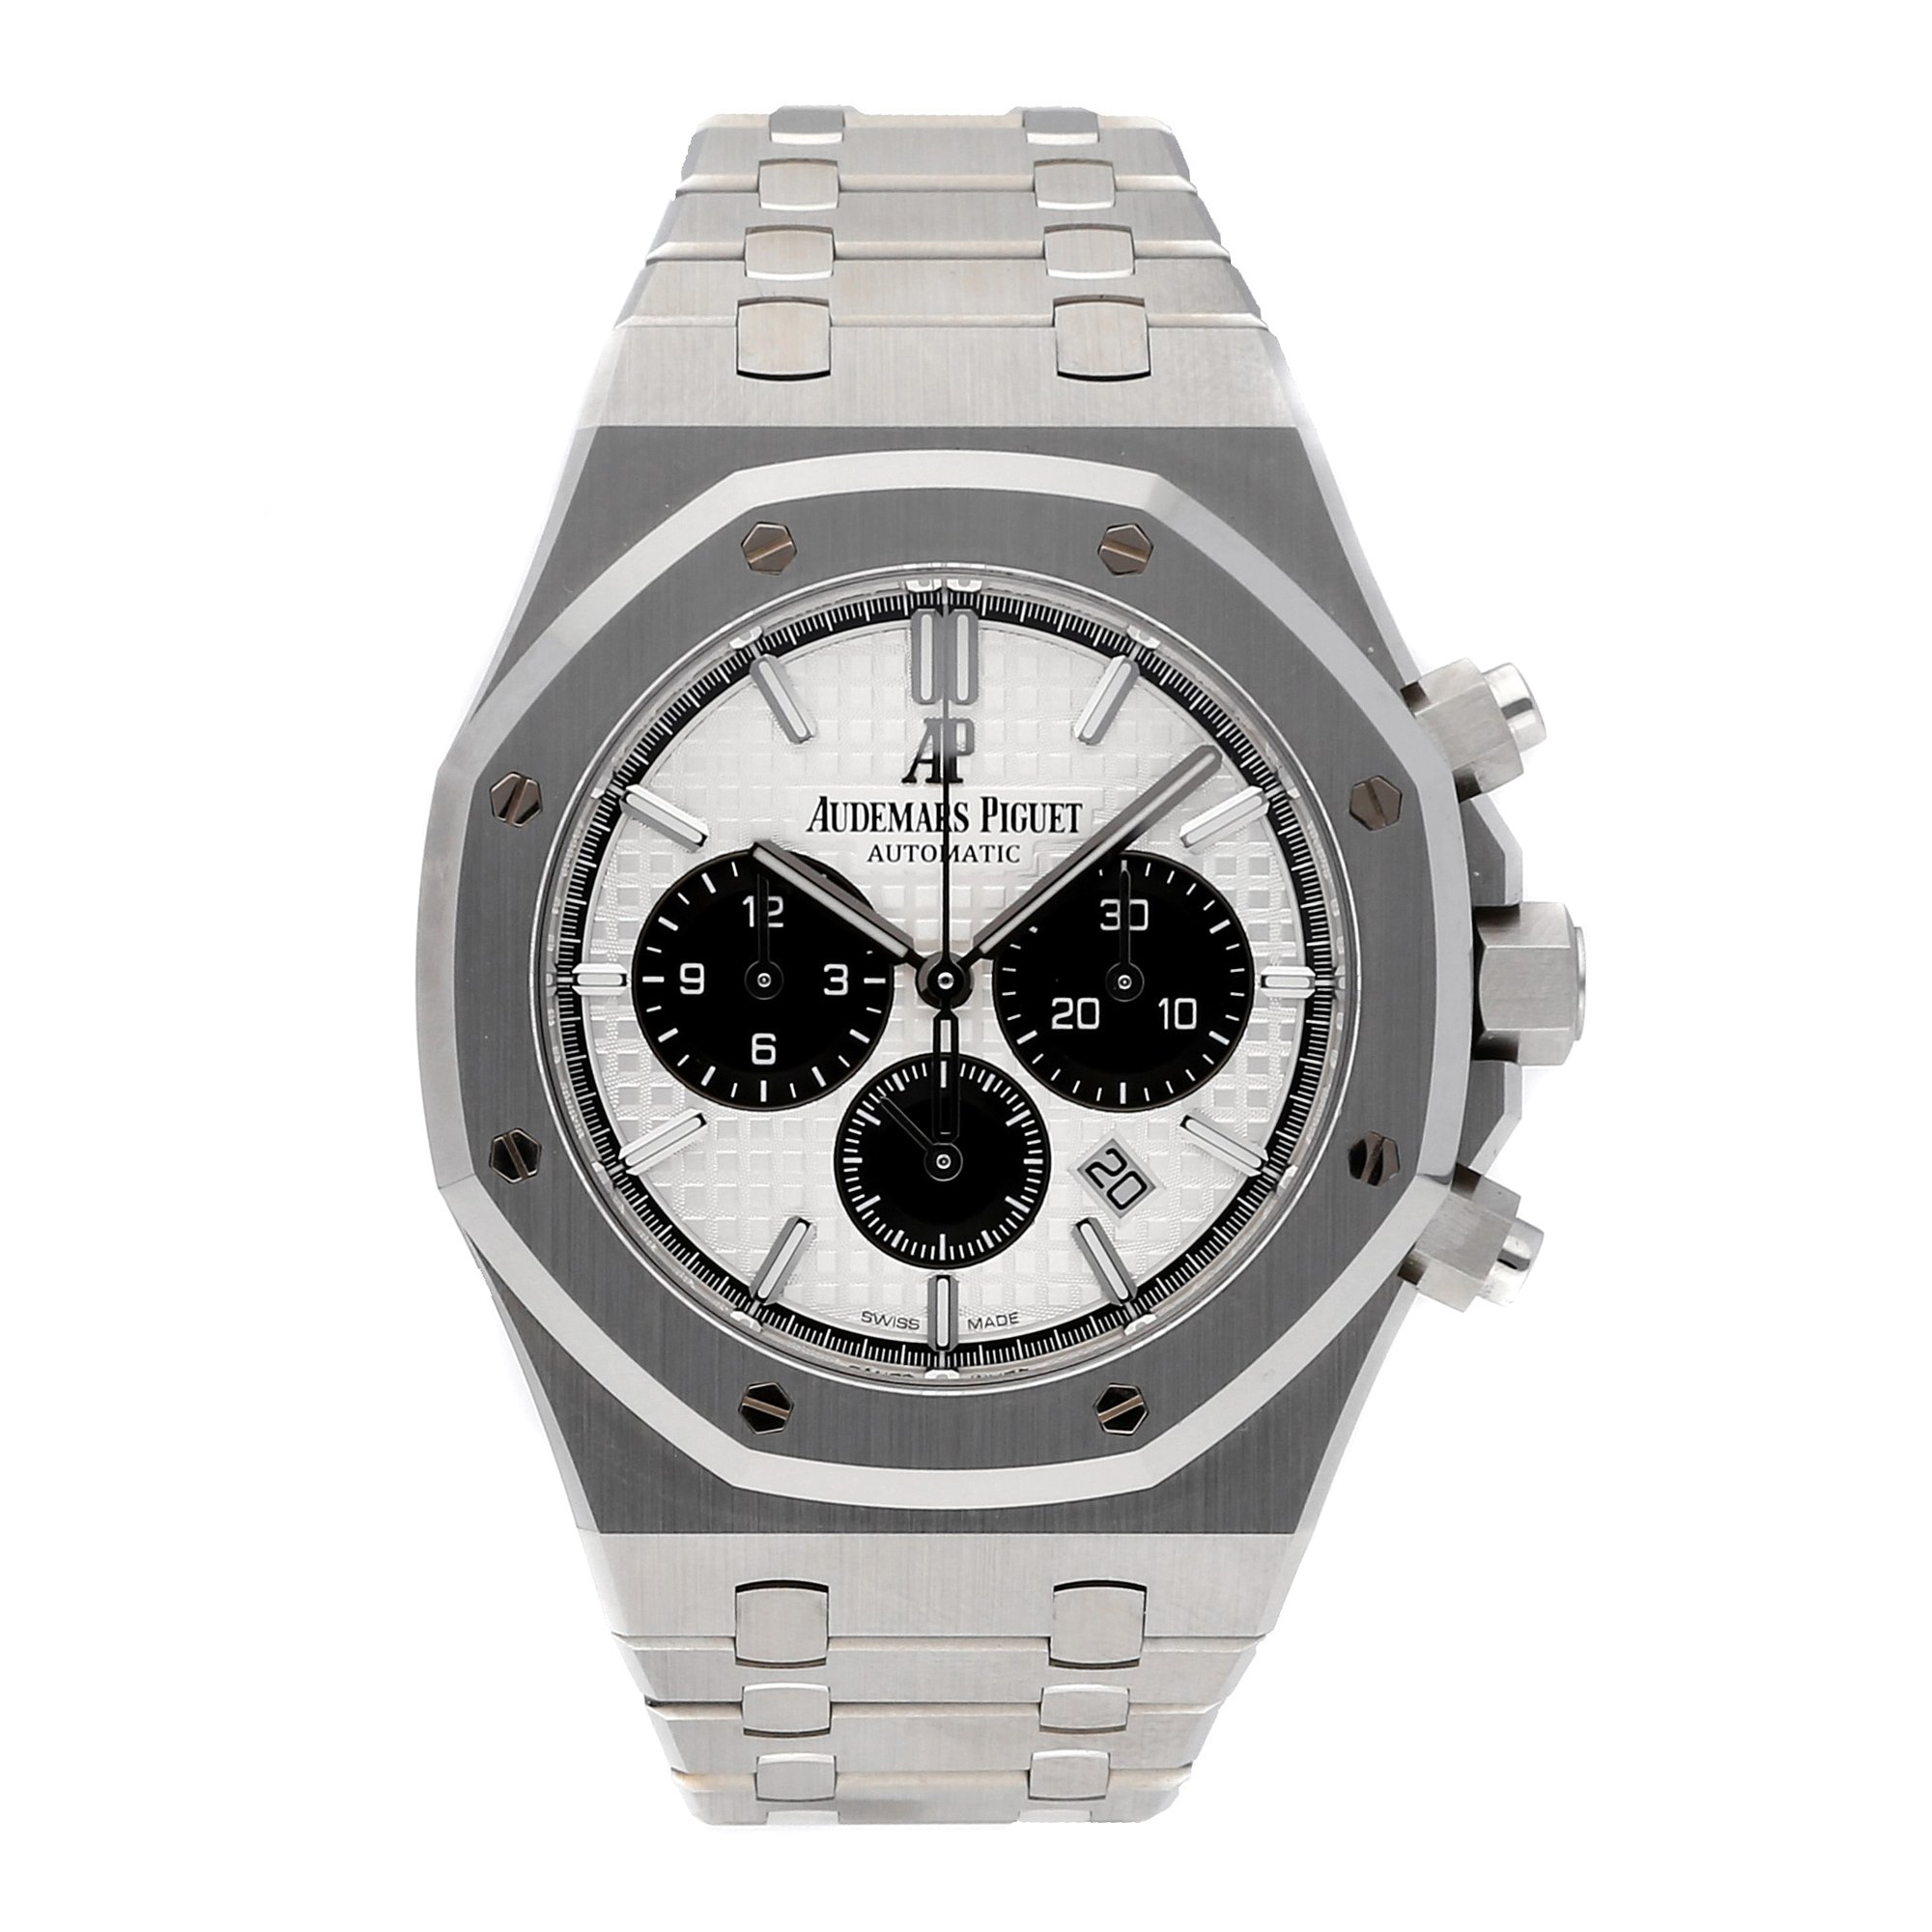 Audemars Piguet Royal Oak Chronograph Stainless Steel 26331ST.OO.1220ST.03